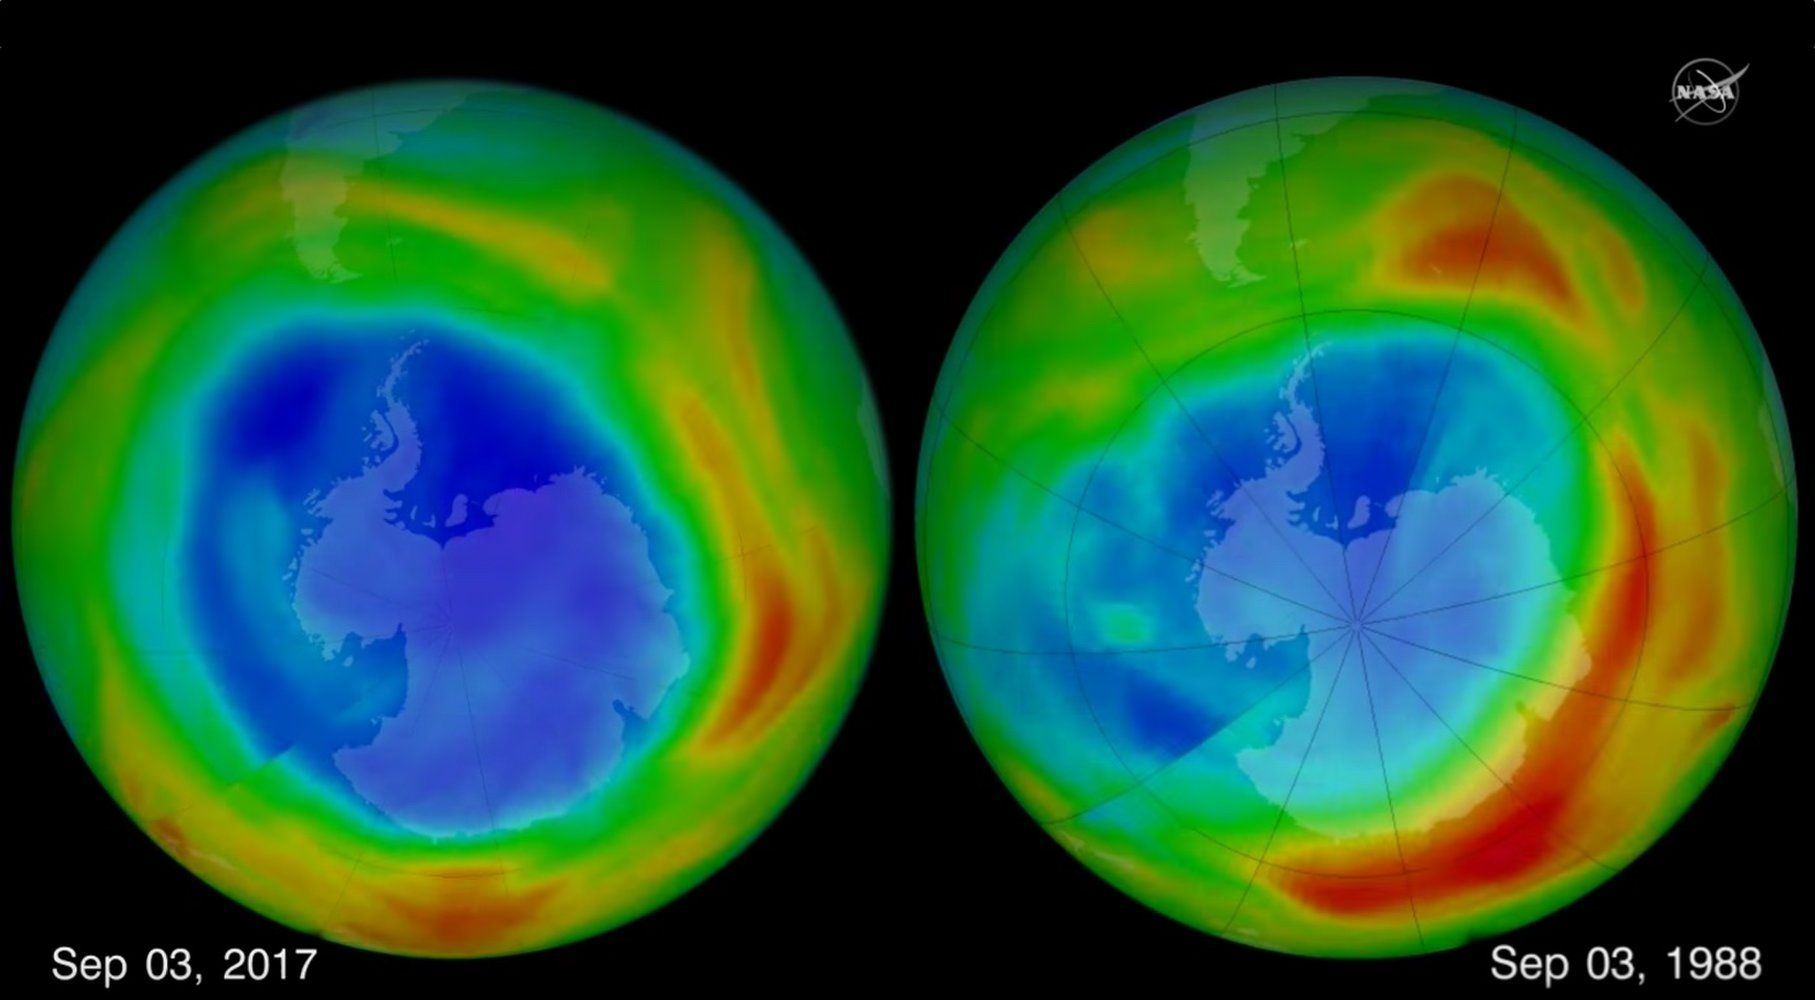 There S No Good Explanation For Why Ozone Ripping Cfcs Are